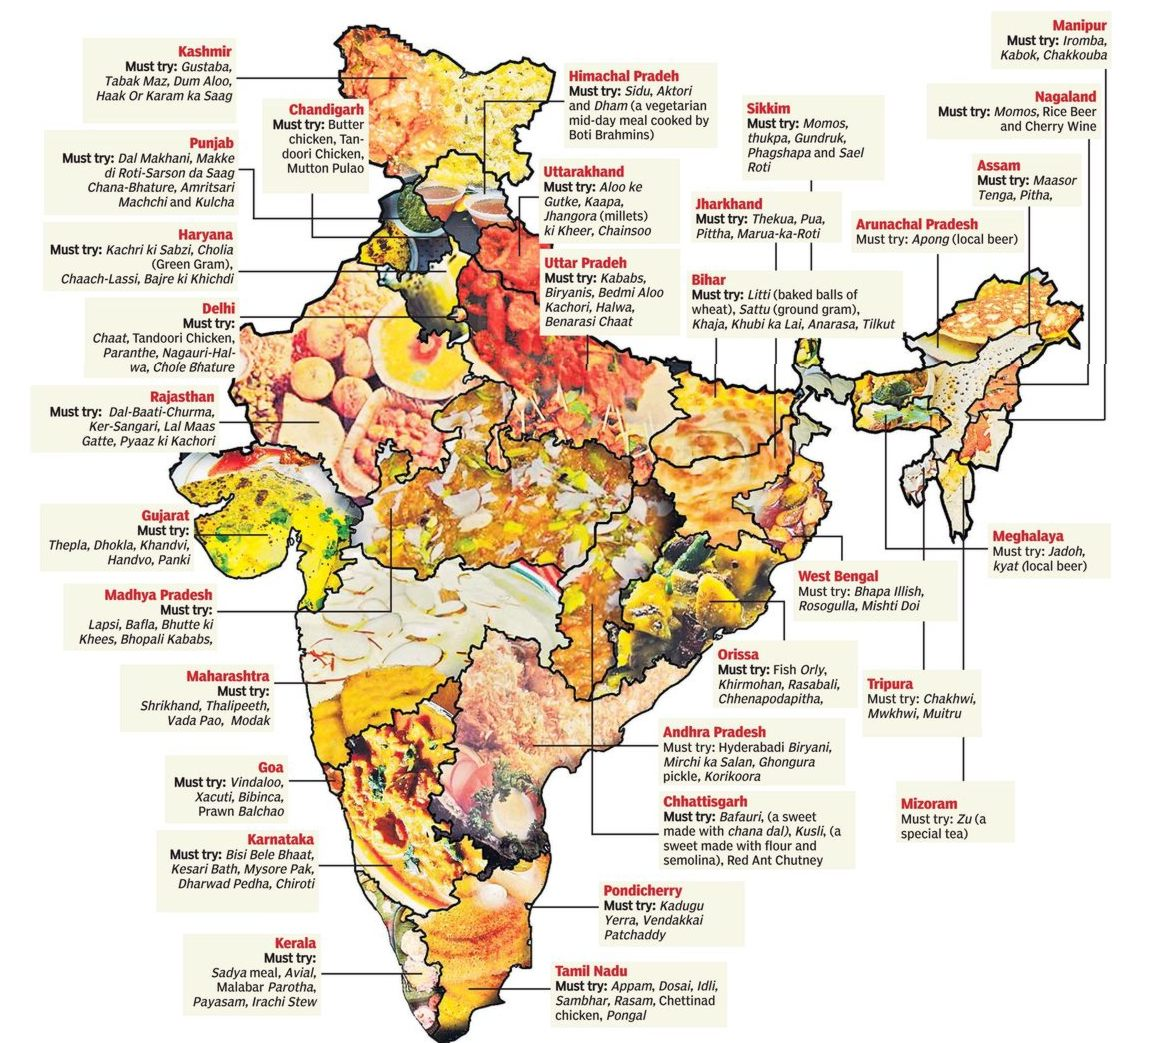 List Of Staple Foods Of Indian States